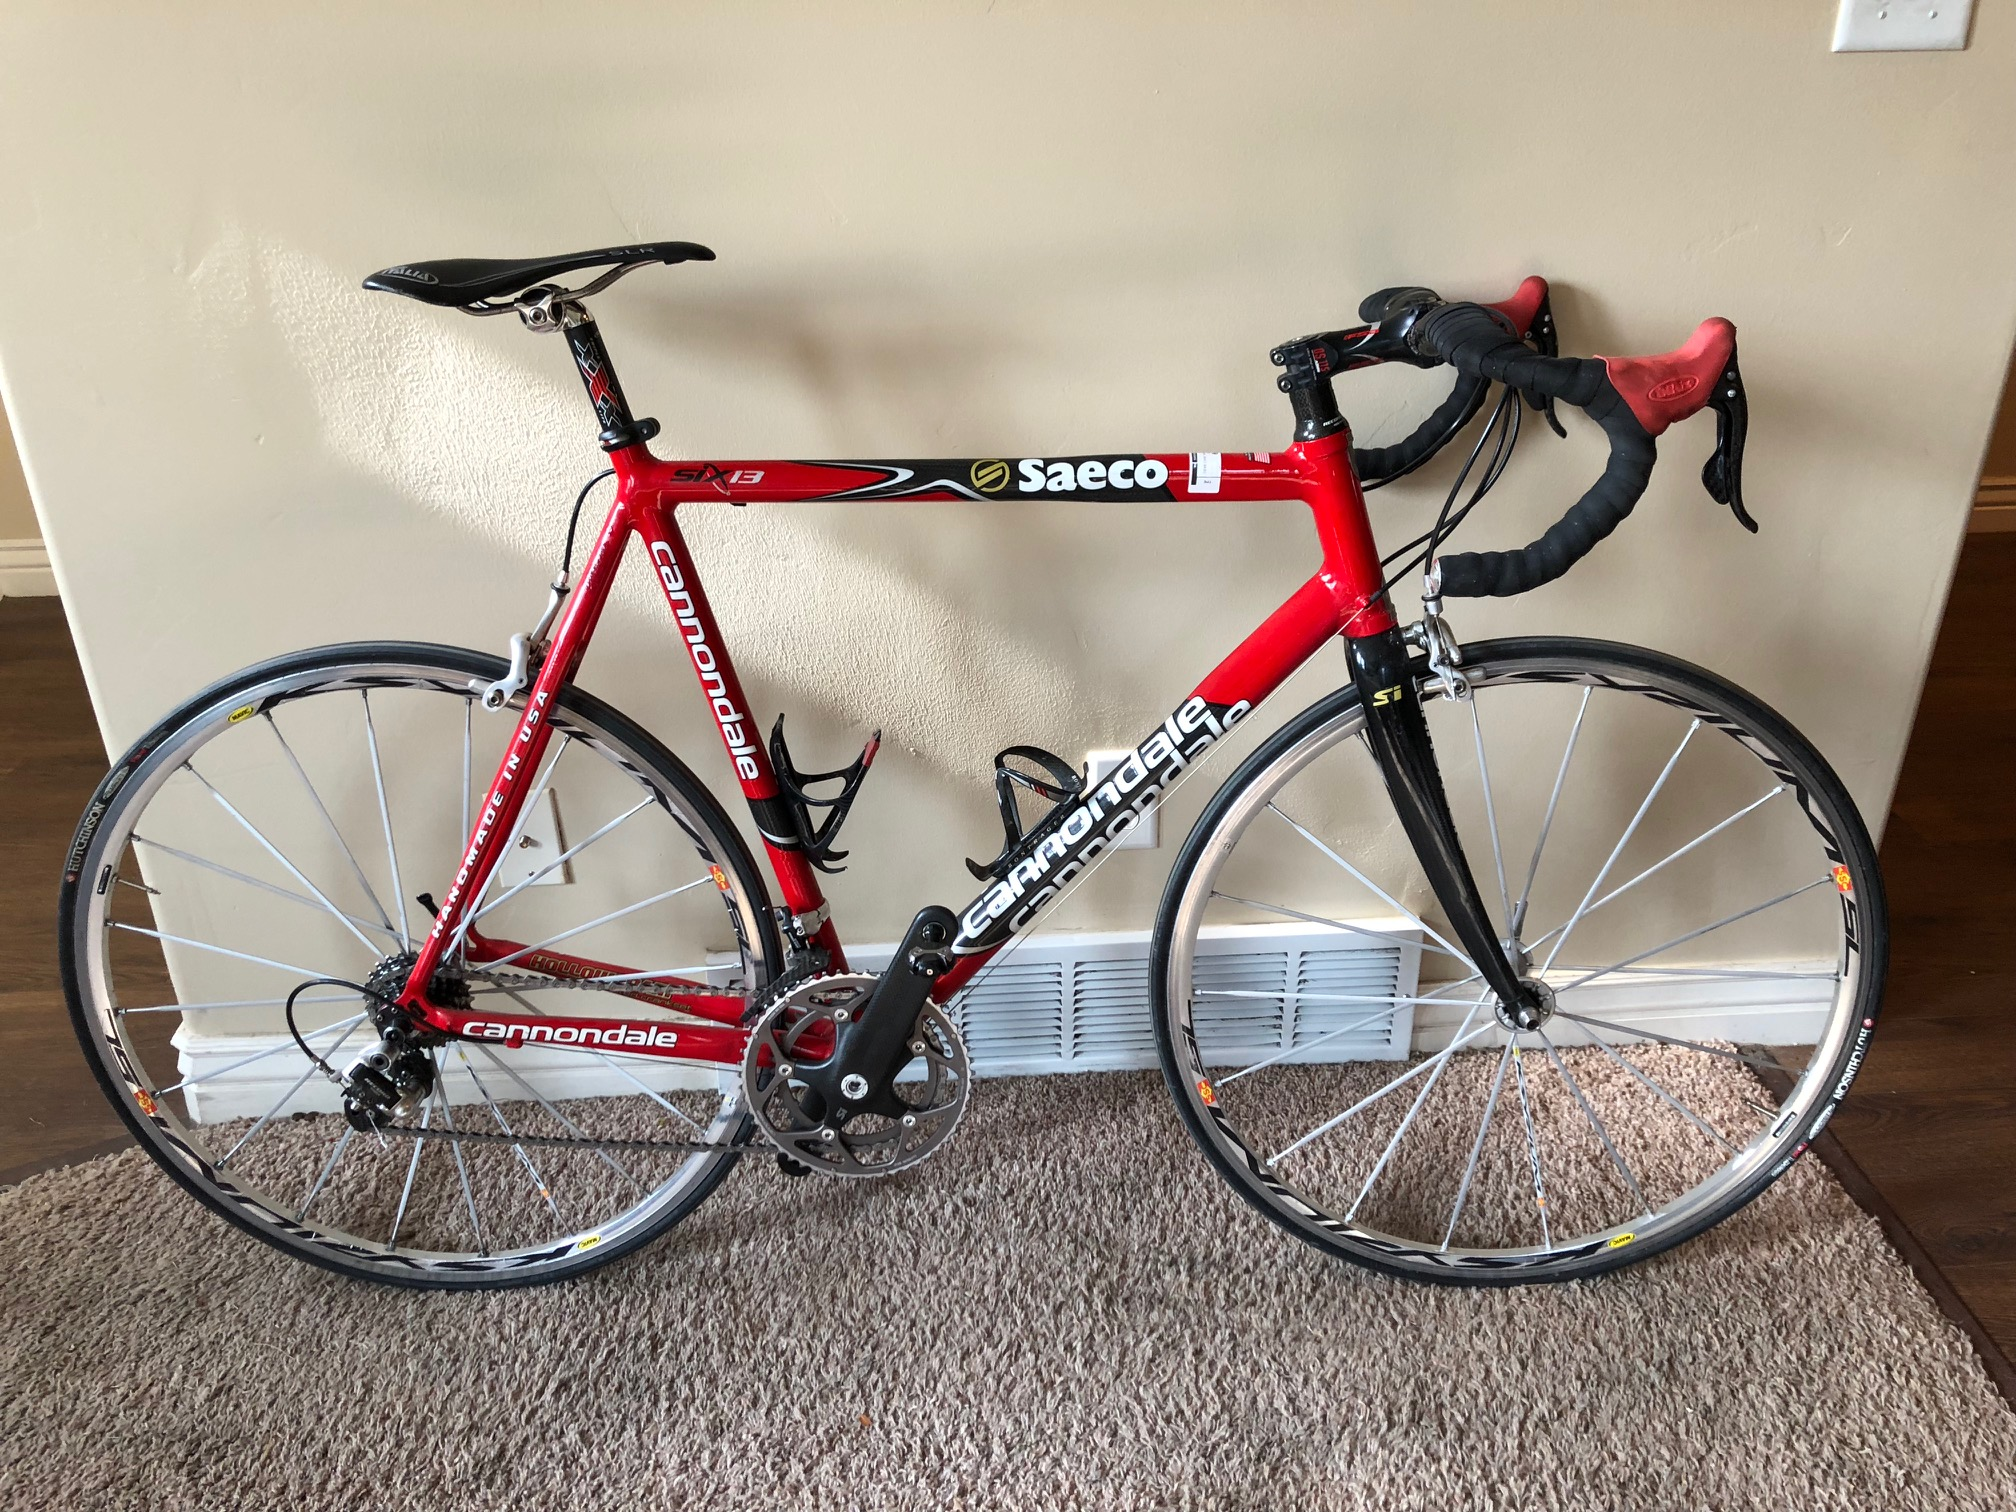 3704a771508 Cannondale Six13 Team Replica For Sale - 11238 - BicycleBlueBook.com